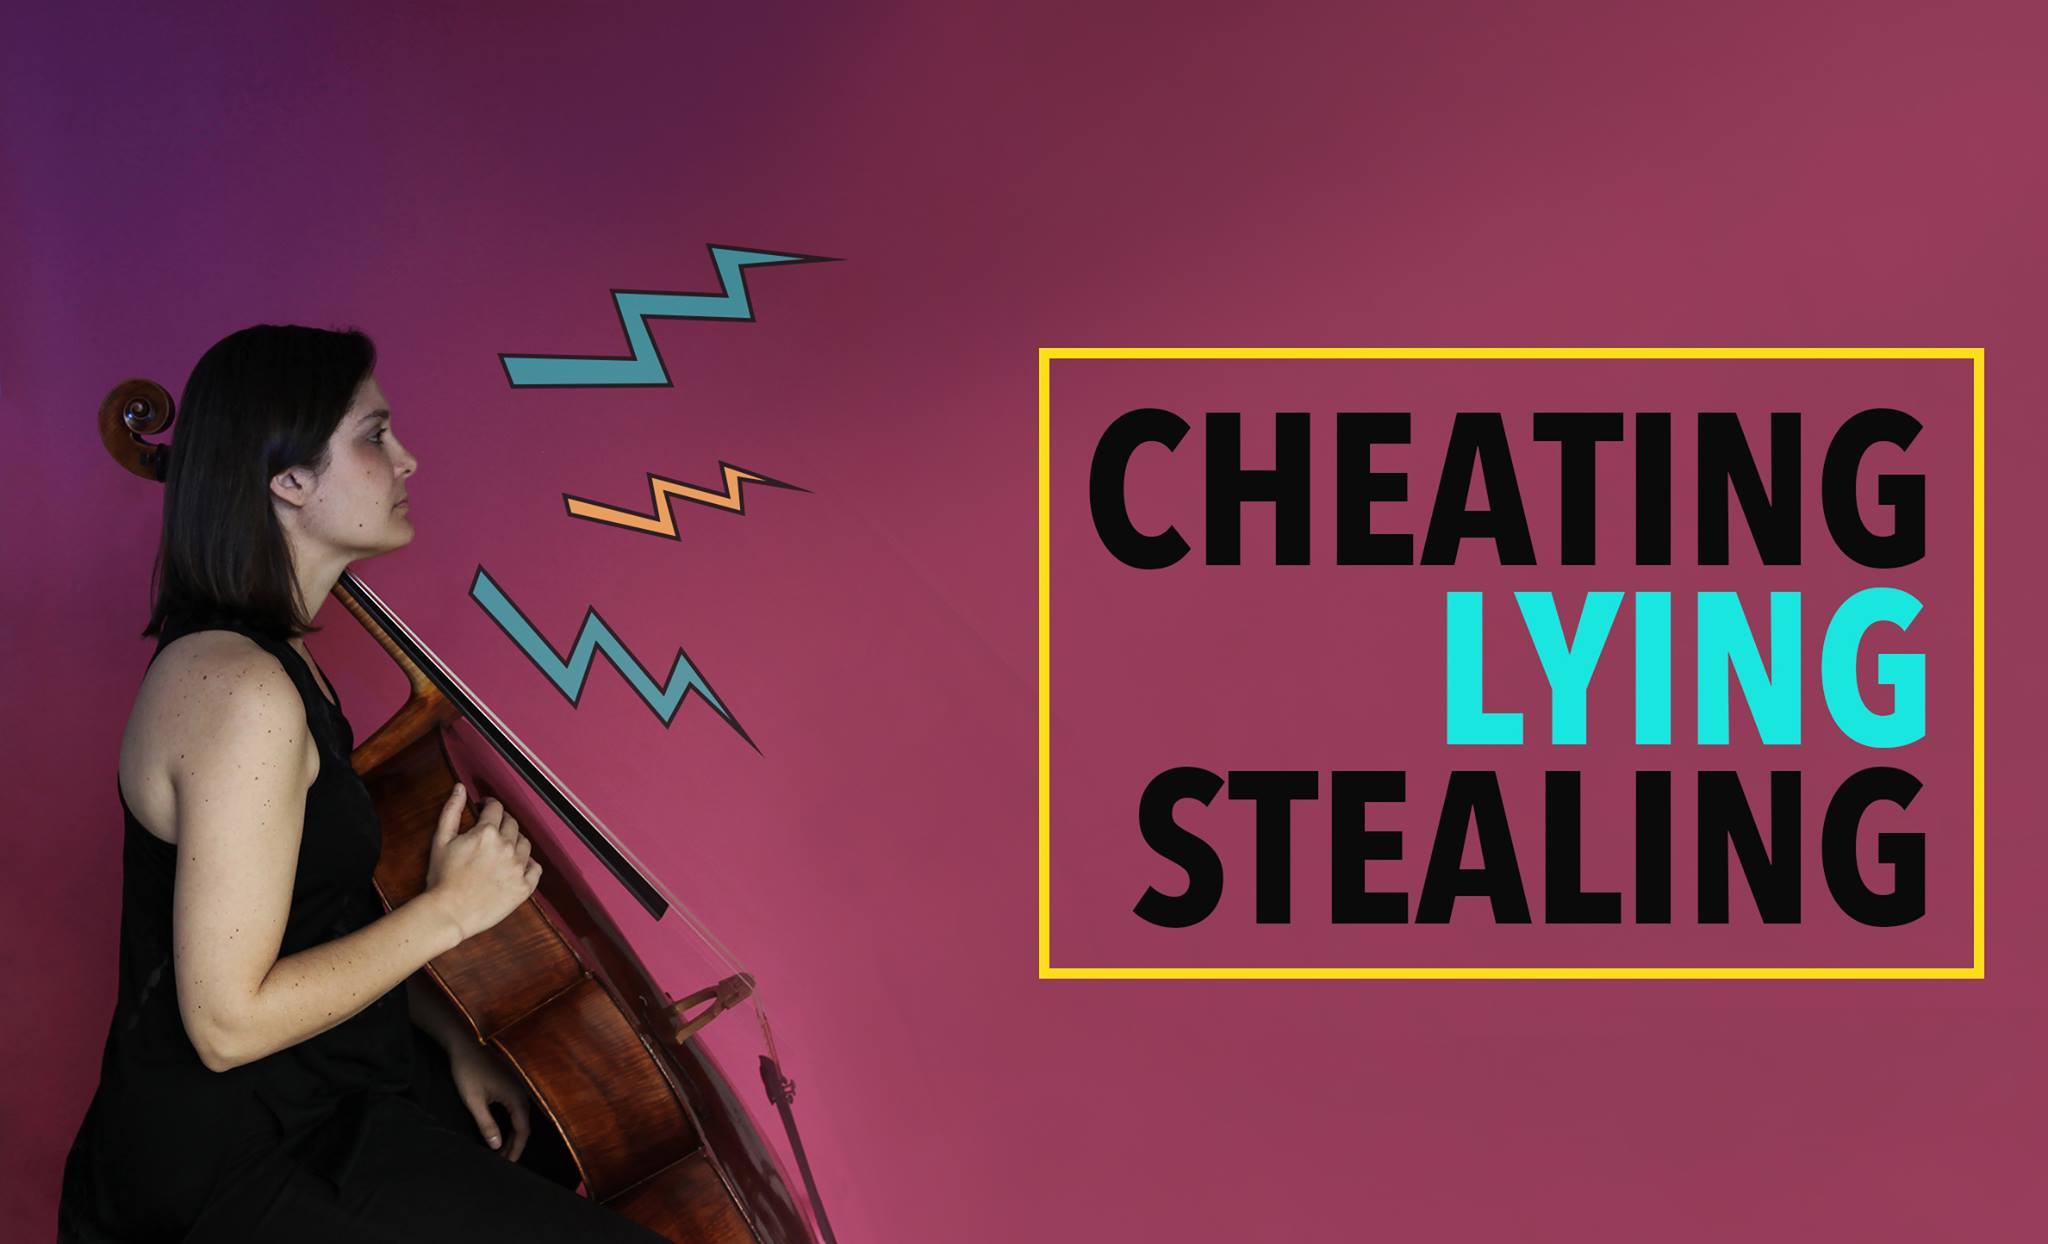 Cheating, Lying, Stealing: Breaking the Rules with Erin